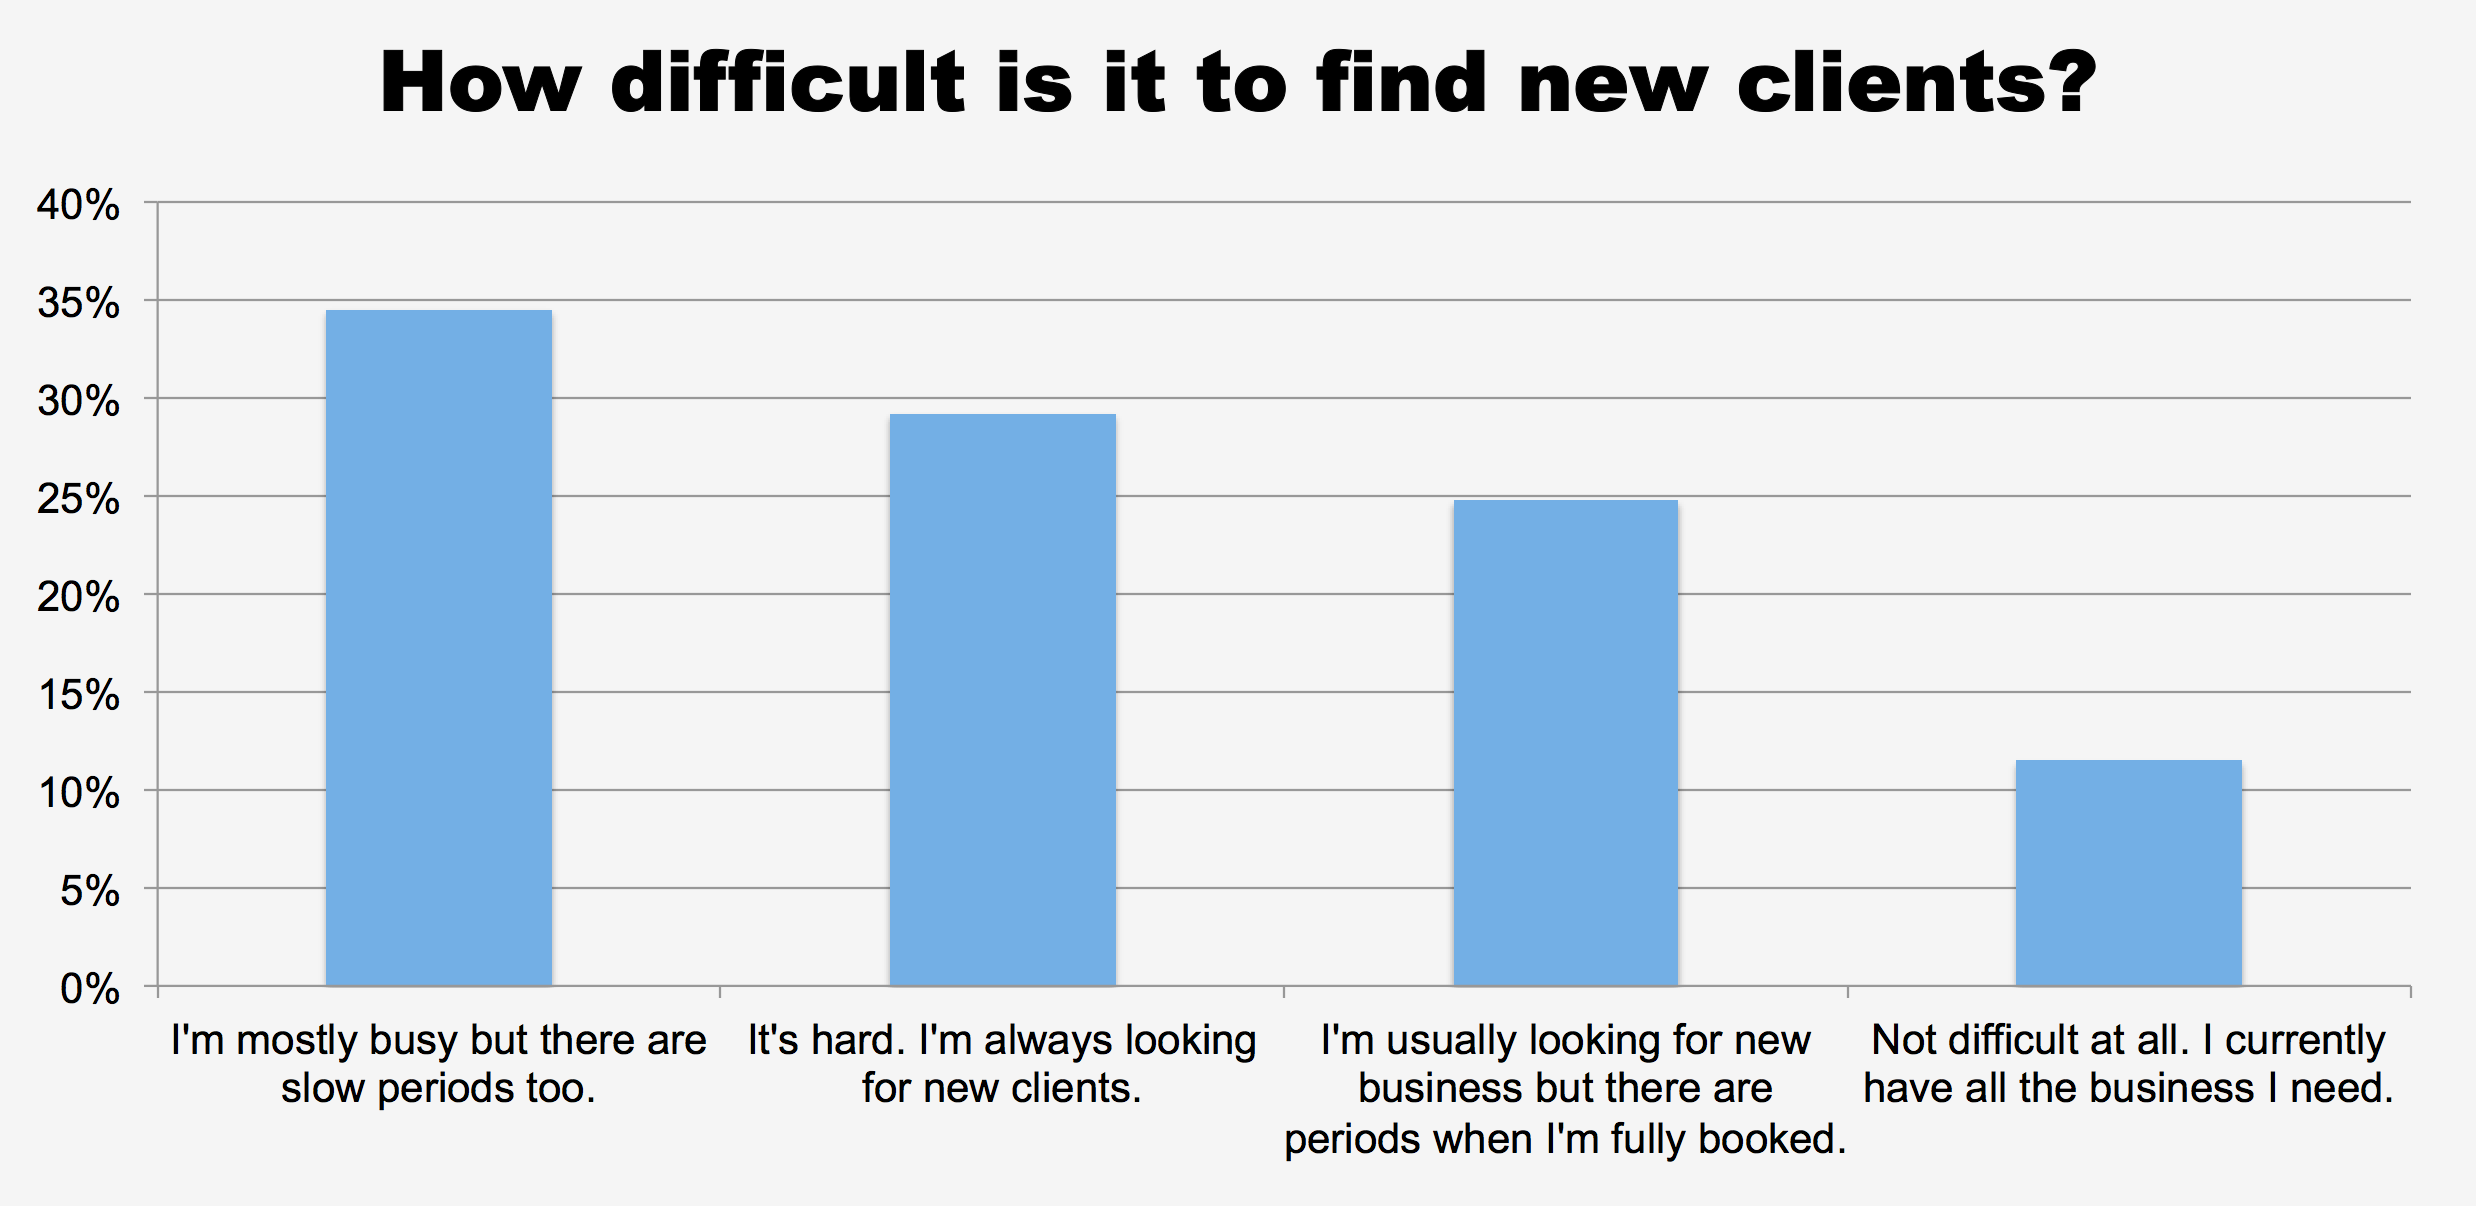 How difficult is it to find new clients?